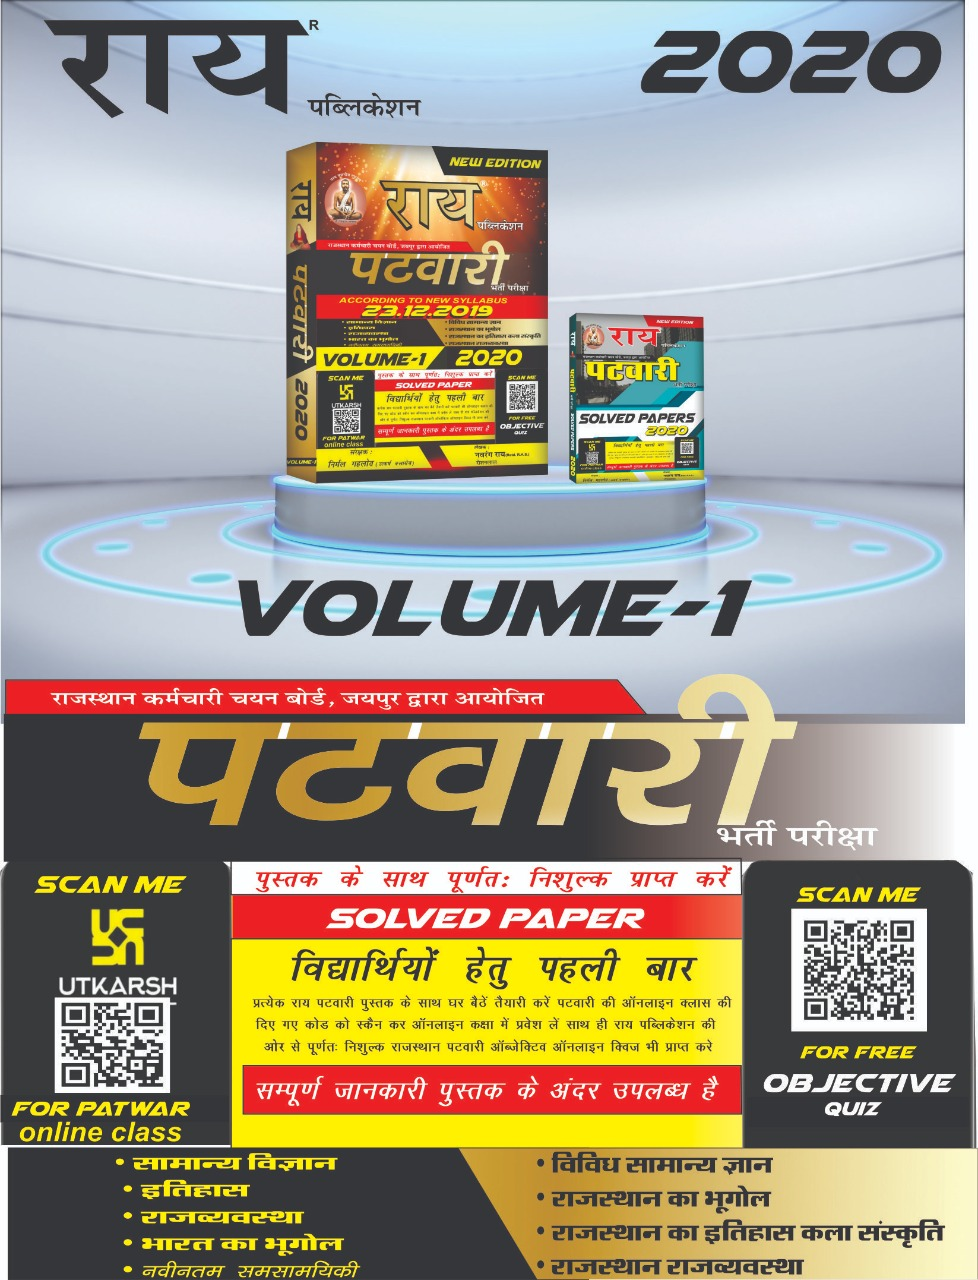 RAJASTHAN PATWARI VOLUME -I  Latest Syllabus with free Solved Papers and online Objective Sets (Samanya Vigyan , Itihas,Rajvyavastha,Bharat Ka Bhugol,Navintam Samsamyiki , Vividh Samanya Gyan , Rajasthan Ka Bhugol , Rajasthan Ka Itihas , Kala avem Sanskriti , Rajasthan Ki Rajvyavastha )  2020 ( Patwari 2020 )( Best Book for Rajasthan Patwari ) ( Free Solved Papers 2009 to 2016)